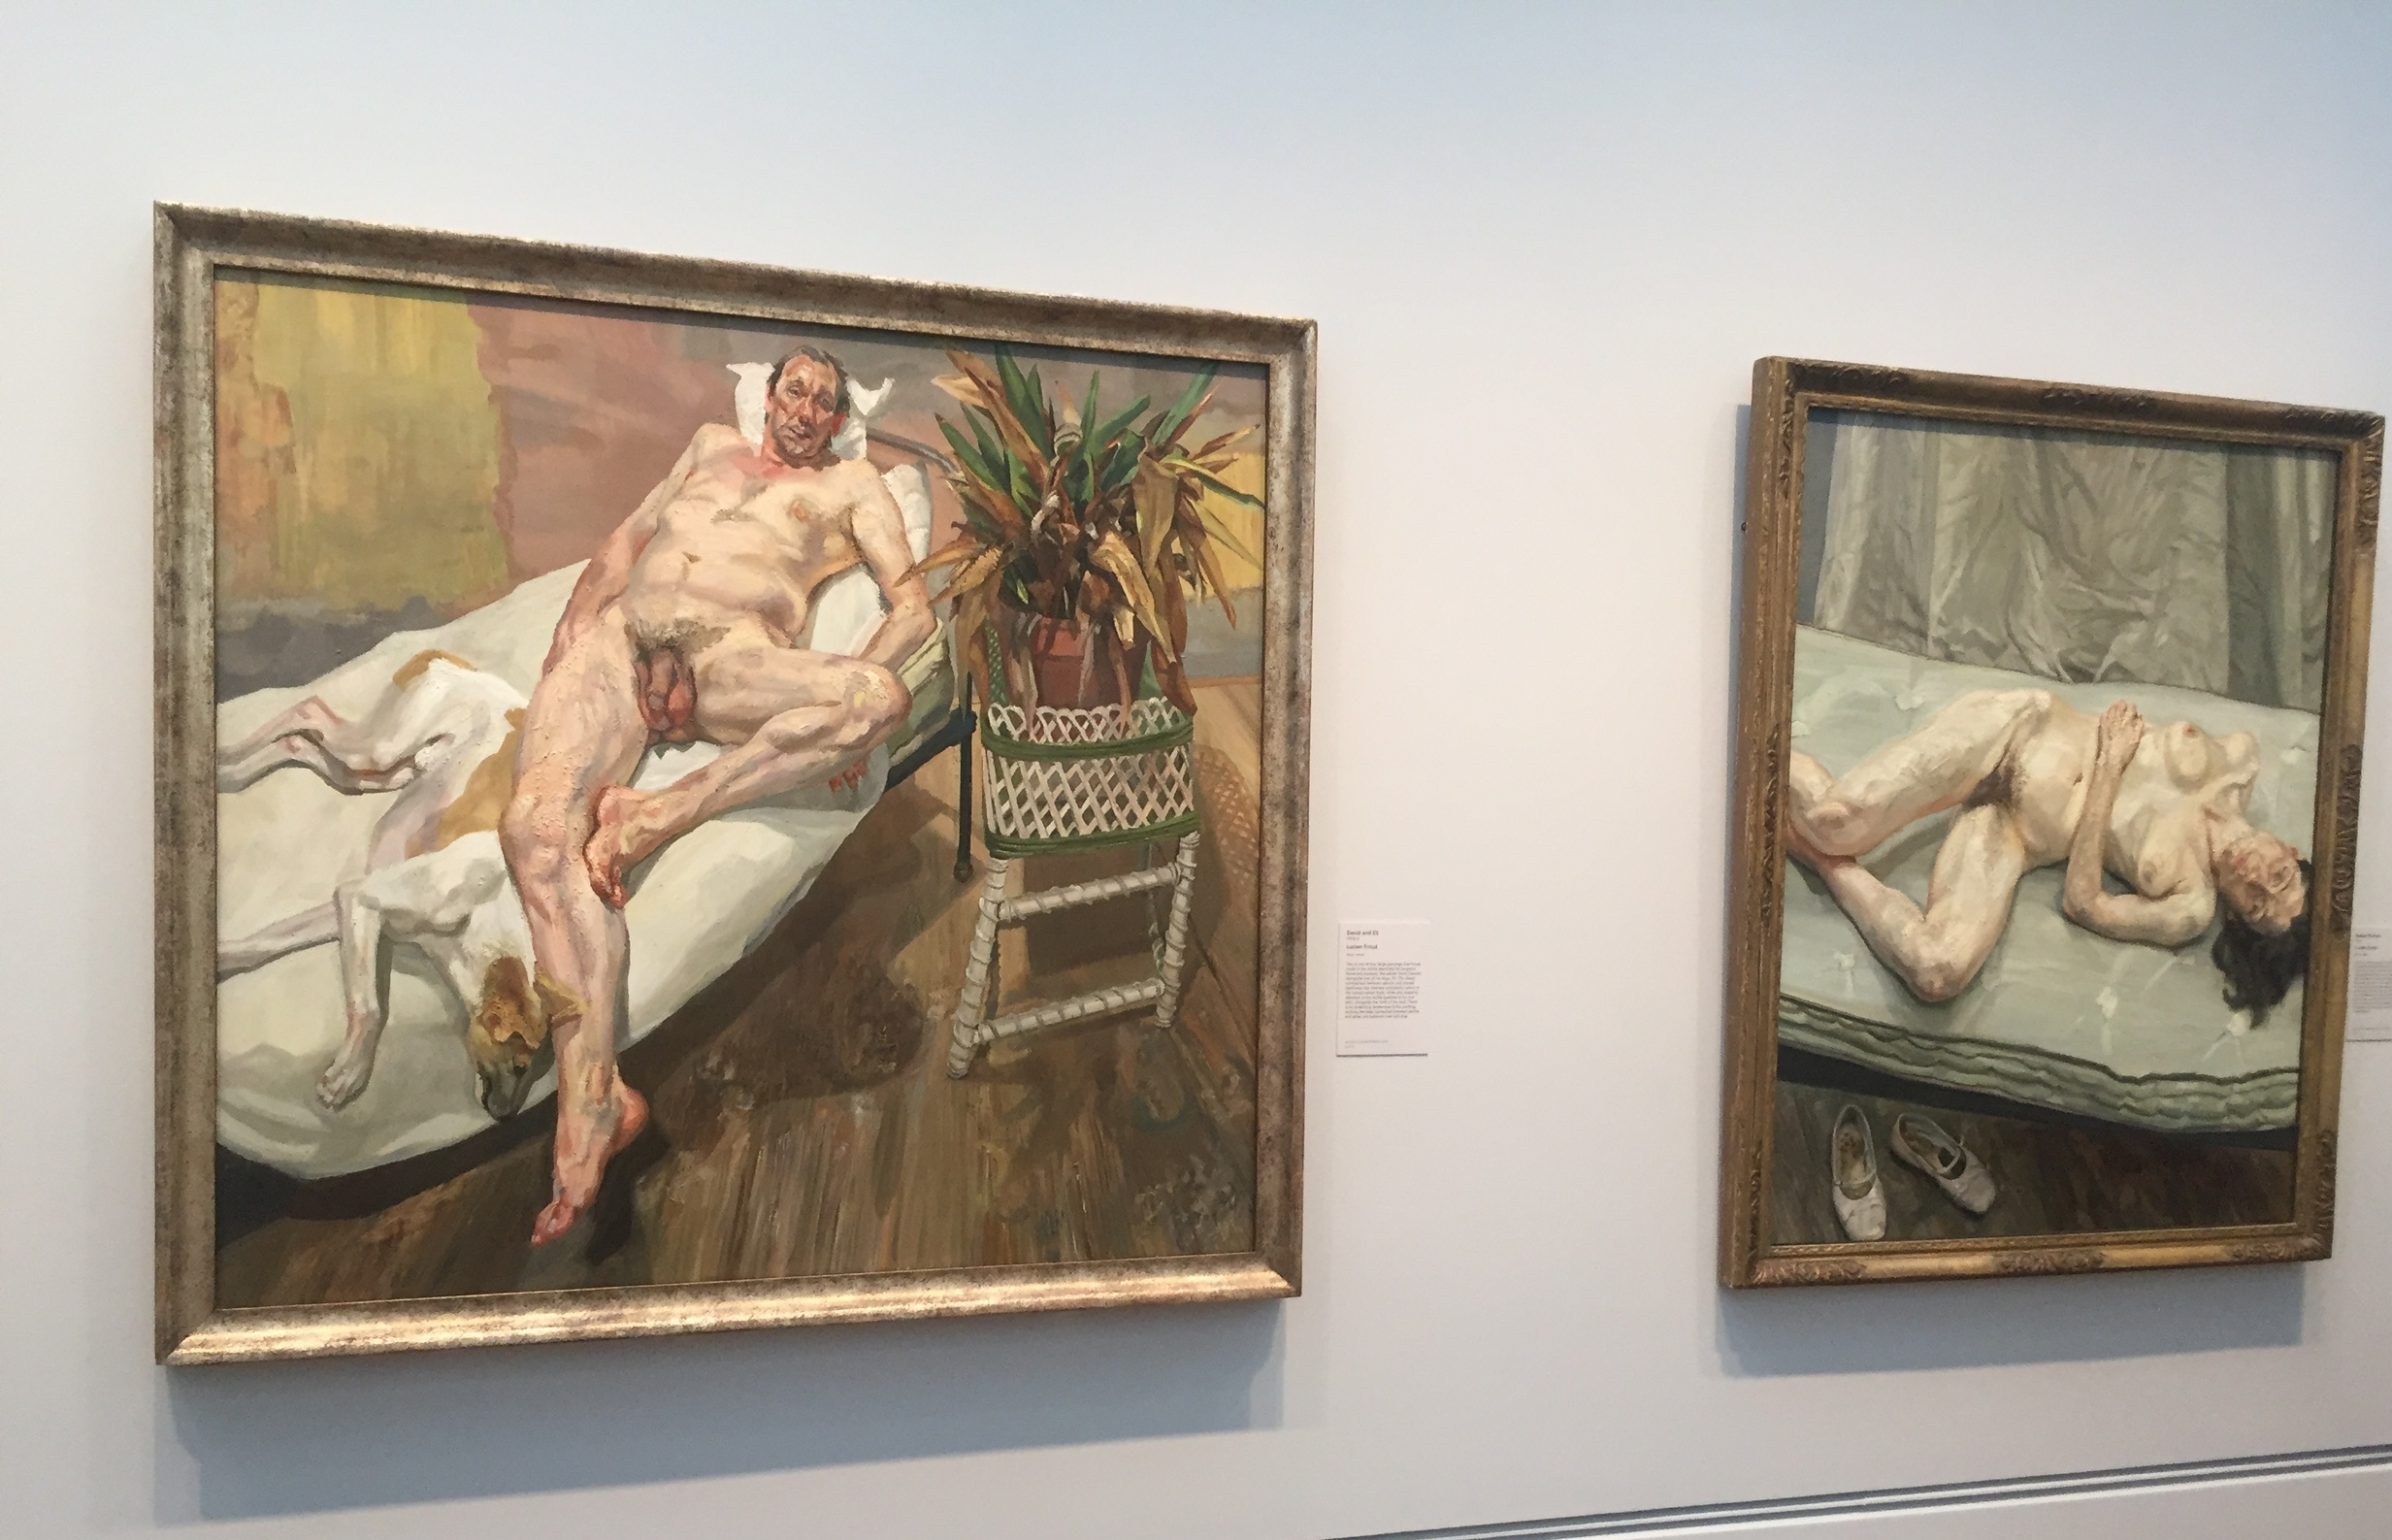 Paintings by Lucian Freud